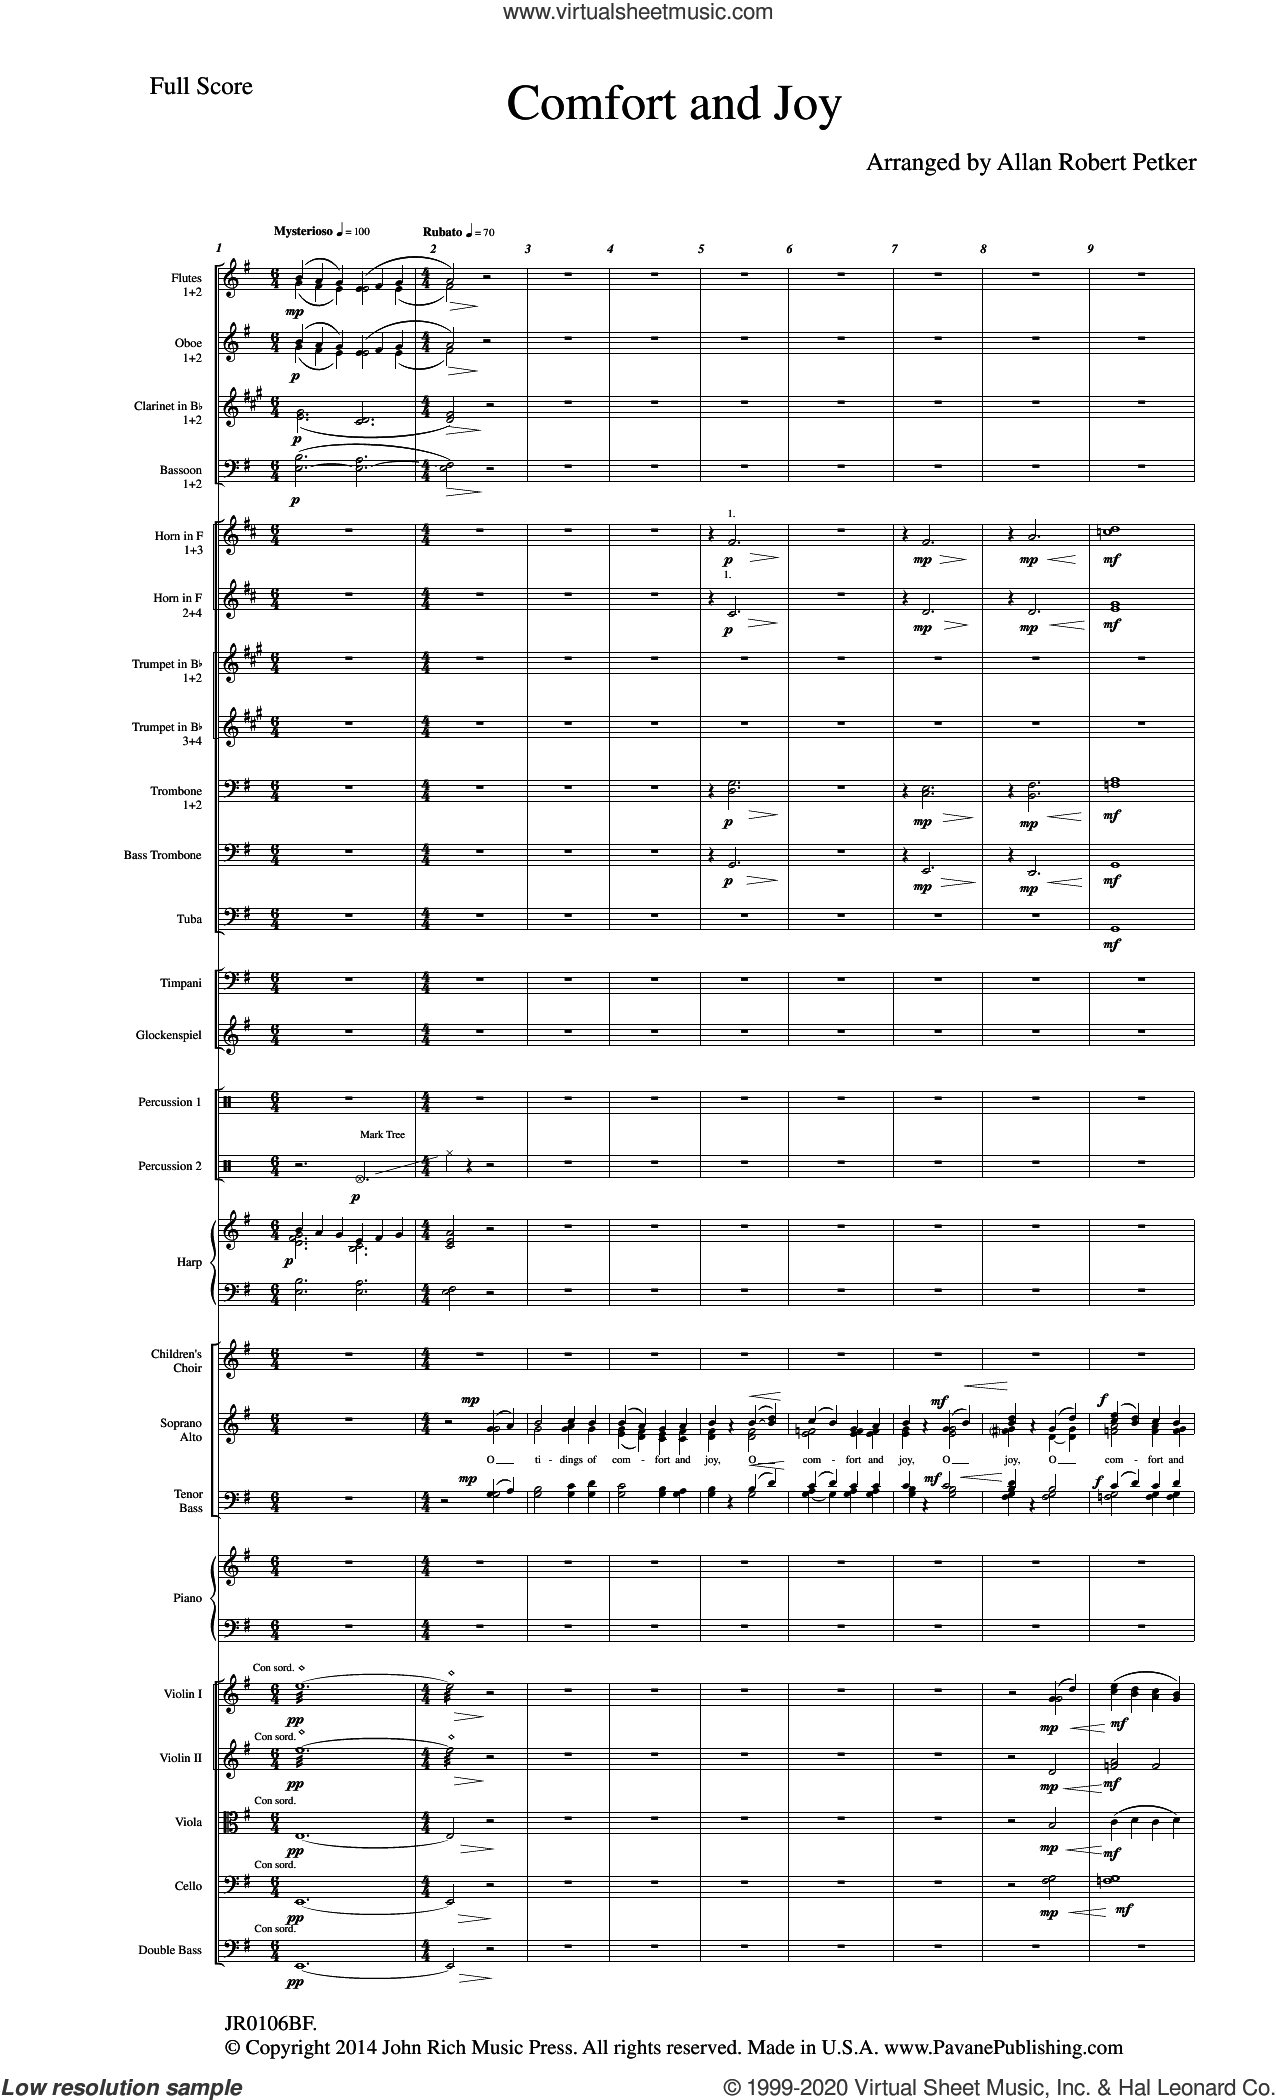 Comfort And Joy (Full Orchestration) (COMPLETE) sheet music for orchestra/band by Allan Robert Petker, intermediate skill level